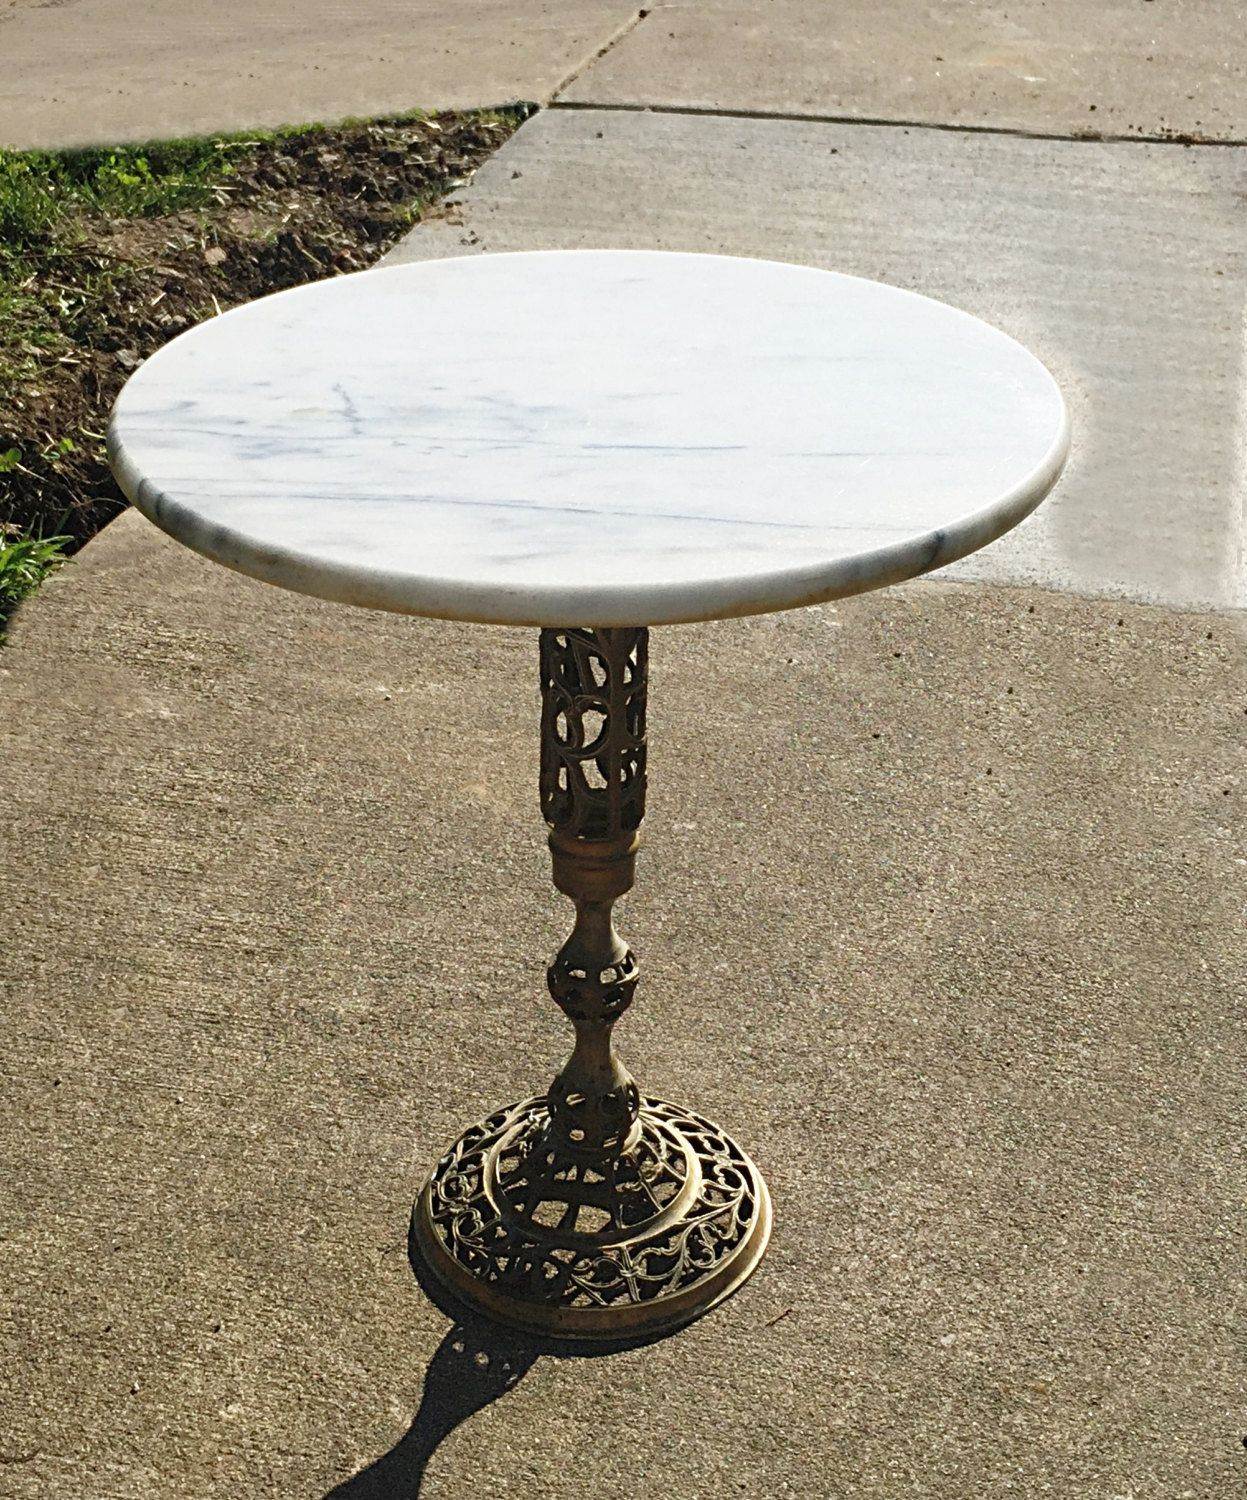 vintage regency marble top table solid brass base excellent side antique gold faceted accent with glass plant stand hallway cutout italian barn door white piece coffee set cloth